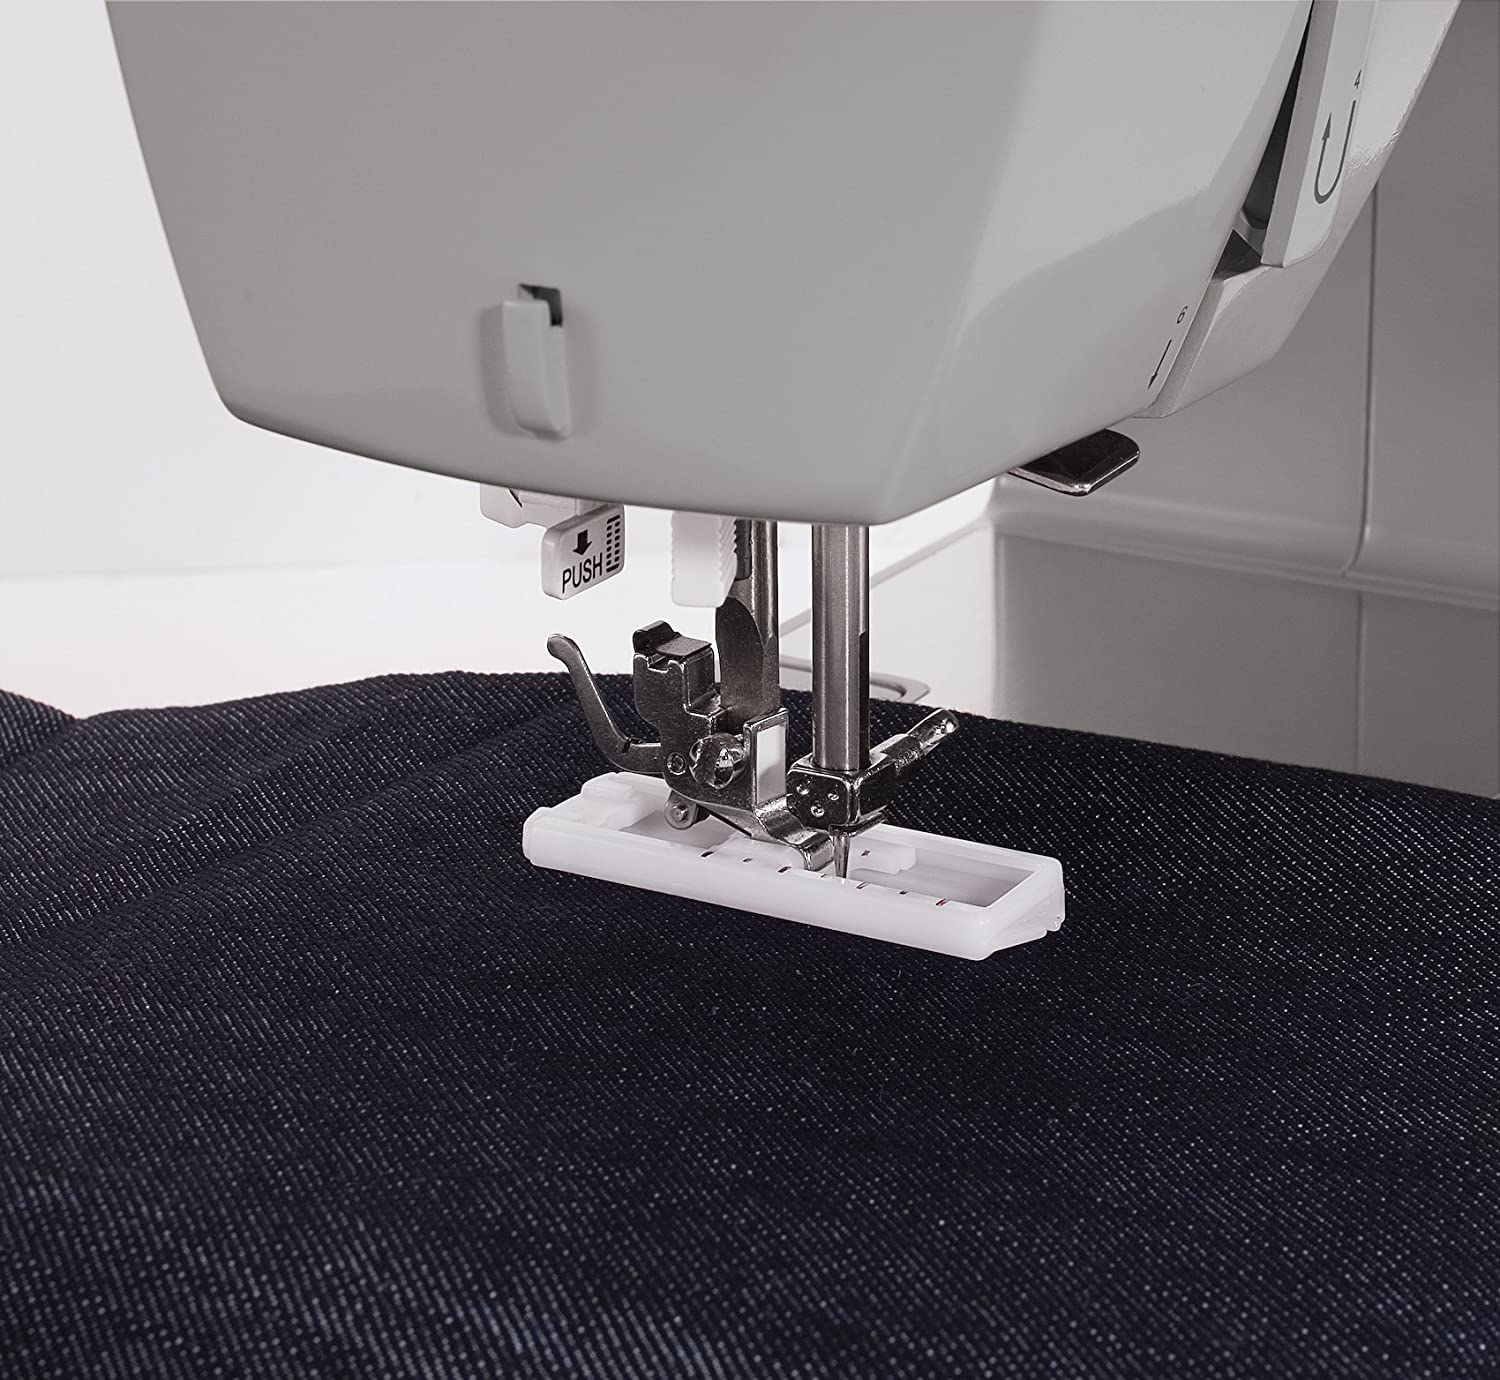 Using a sewing machine effectively